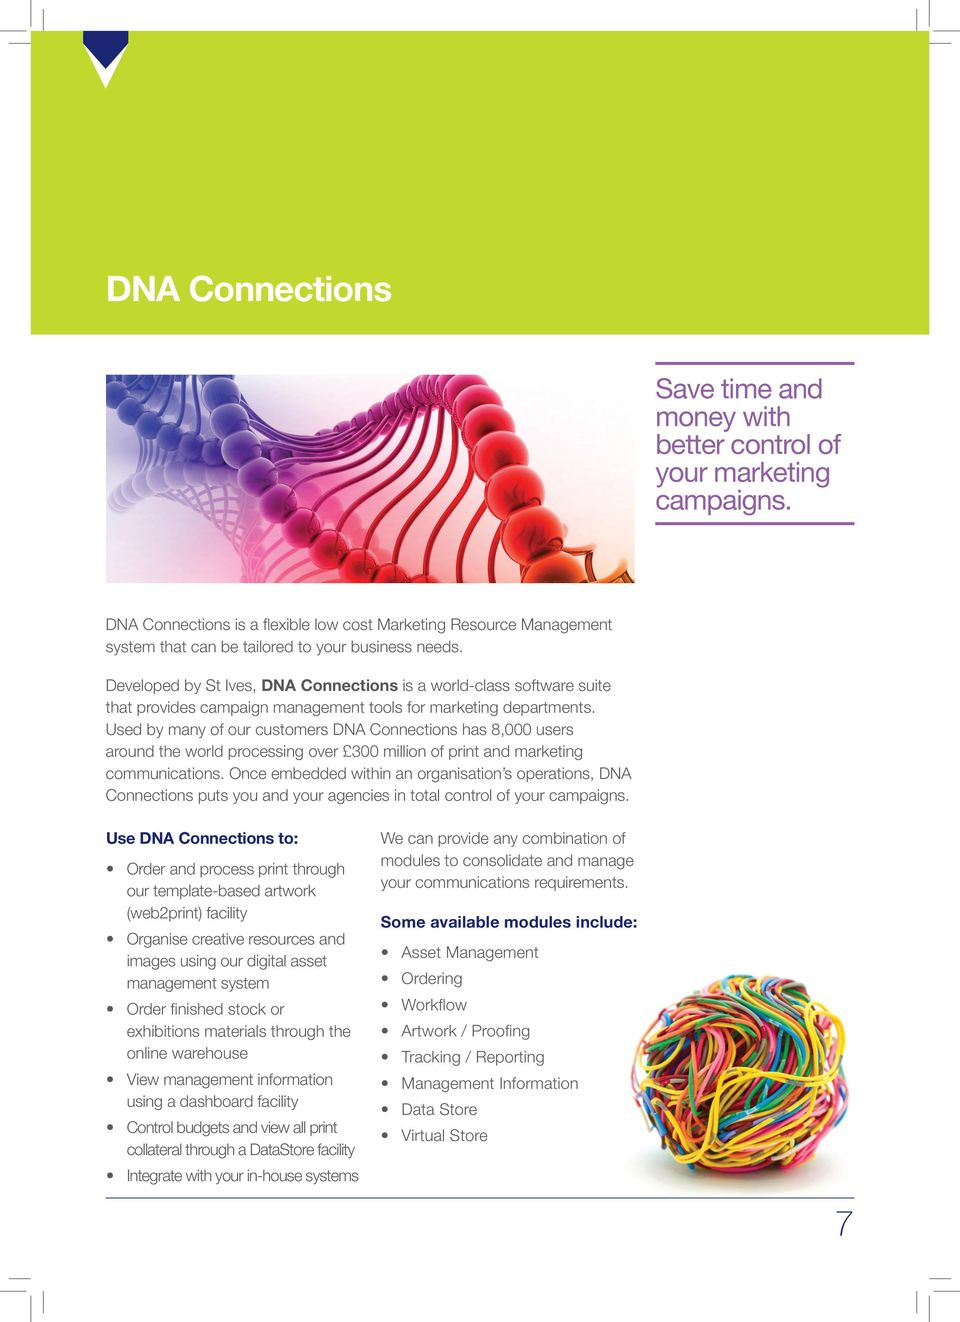 Developed by St Ives, DNA Connections is a world-class software suite that provides campaign management tools for marketing departments.